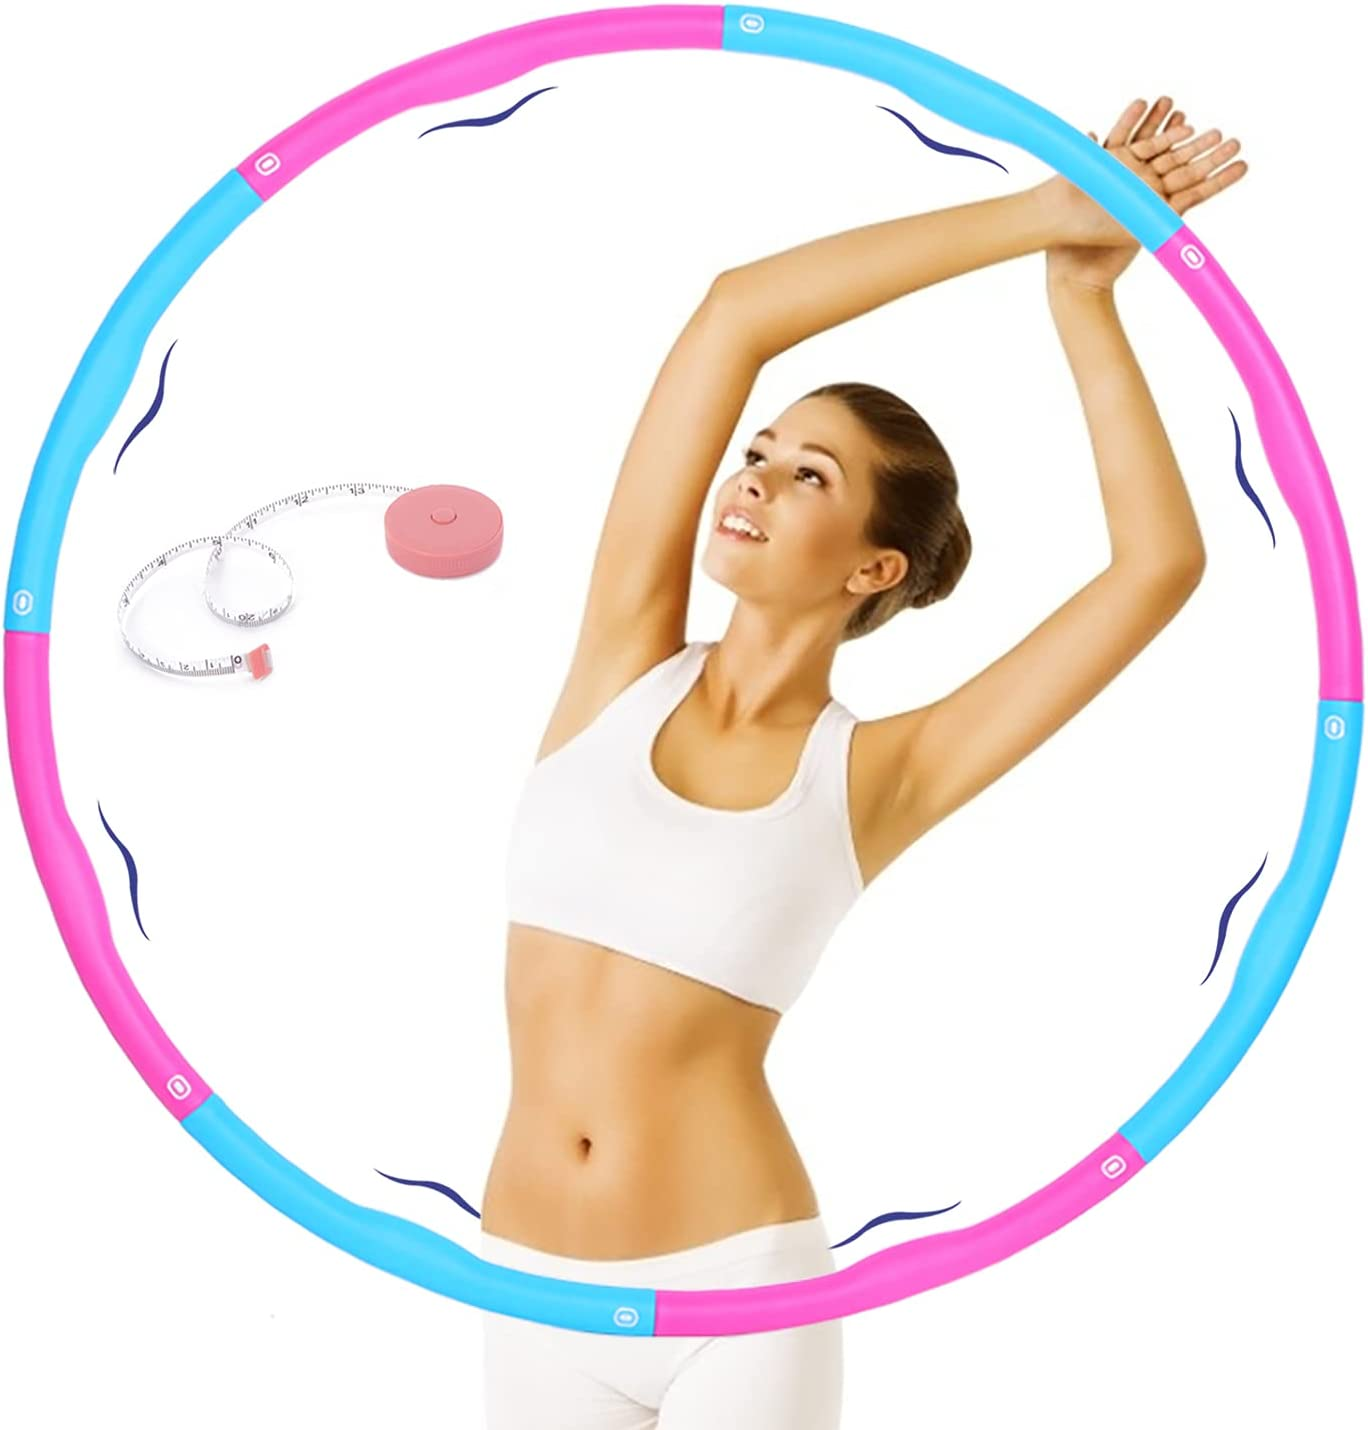 Beezouseny Holahoops For Fitness 2.6 Weighted lbs Massage Exerc Popular standard Discount mail order